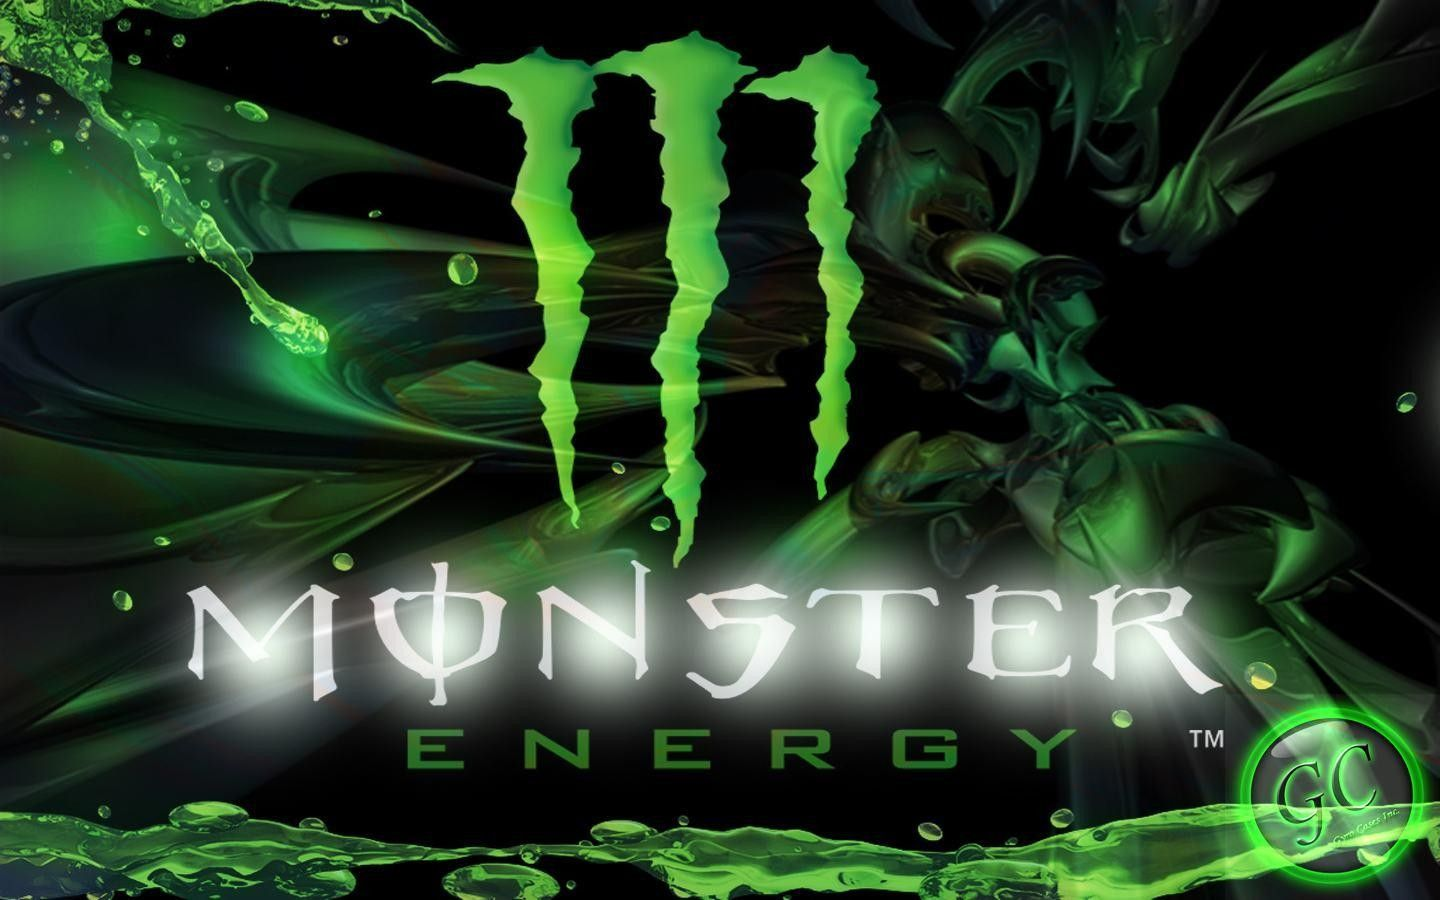 Pin By Robert Calvert On Galaxy Wallpaper In 2020 Monster Pictures Monster Energy Cool Monsters